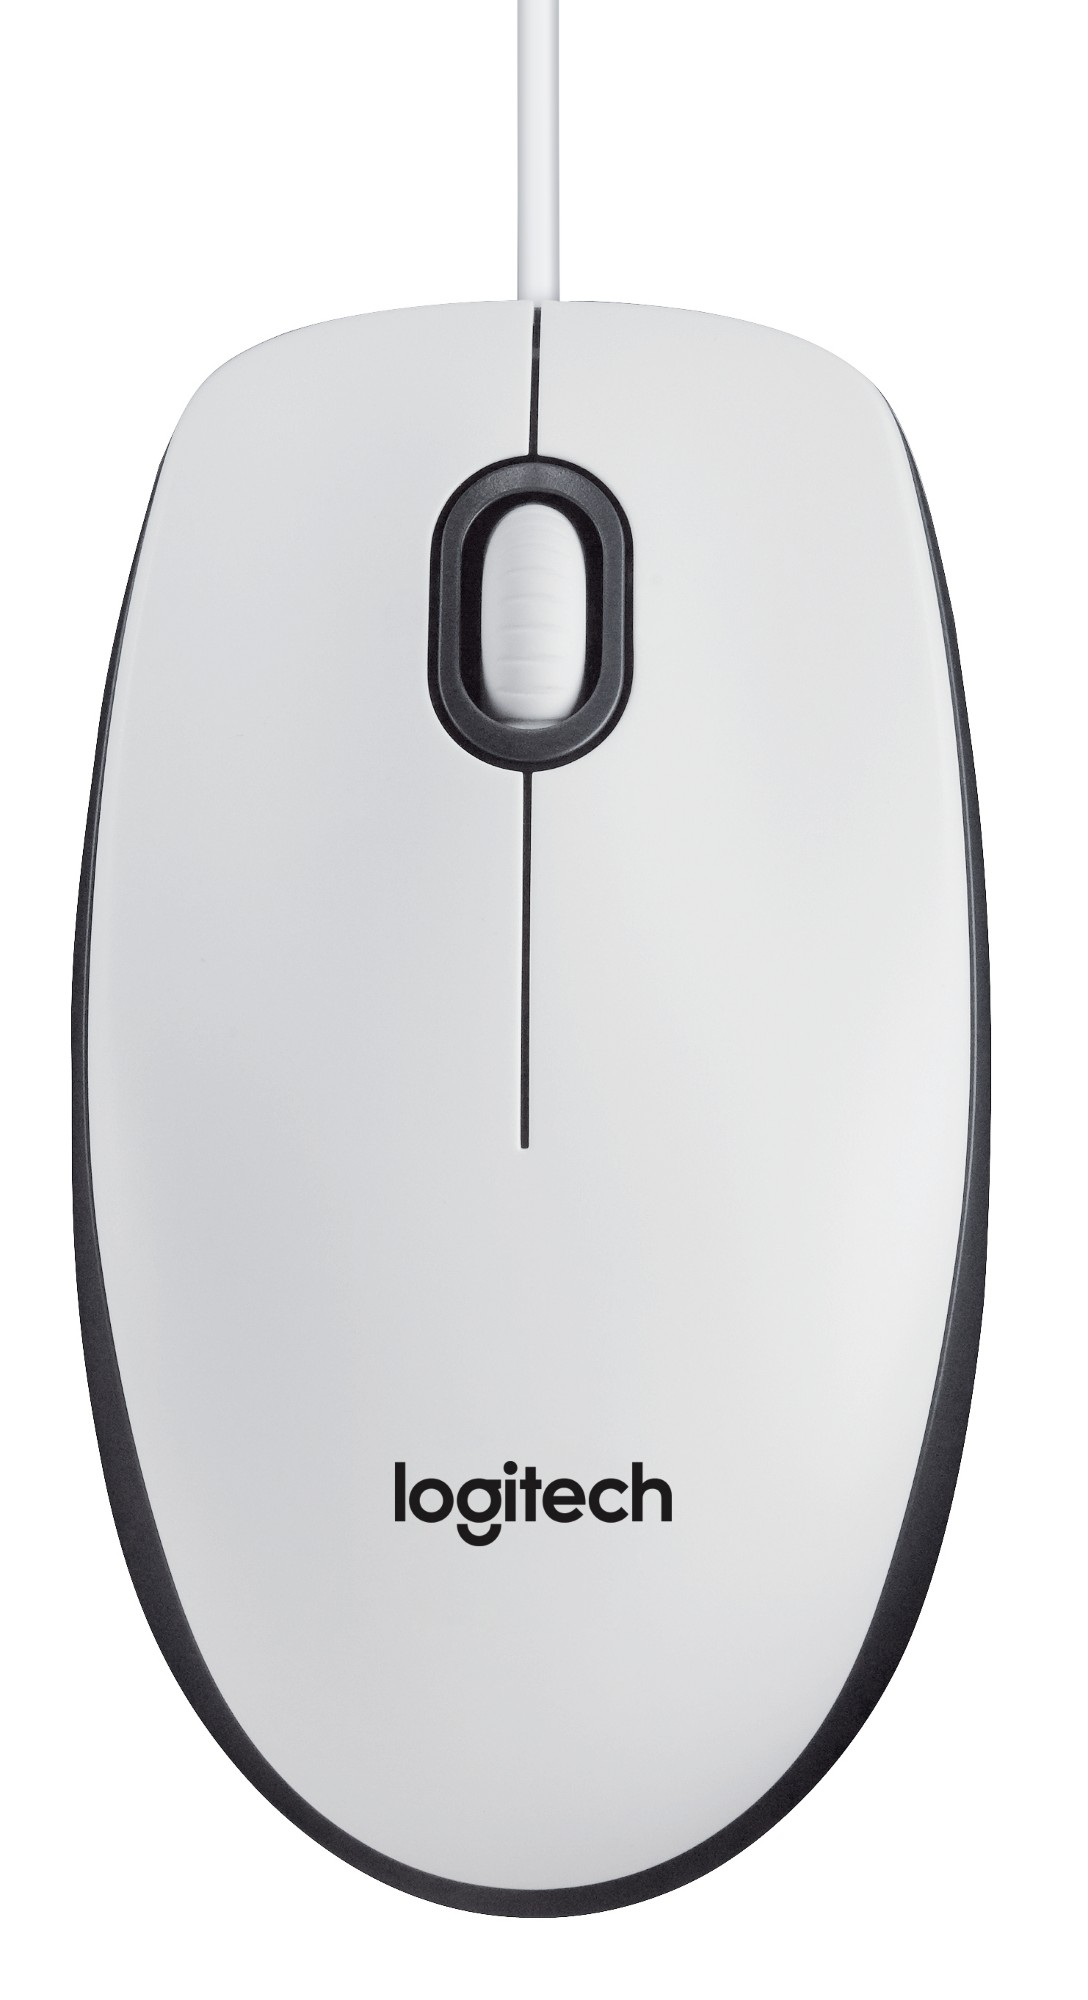 LOGITECH M100 USB OPTICAL 1000DPI AMBIDEXTROUS WHITE MICE